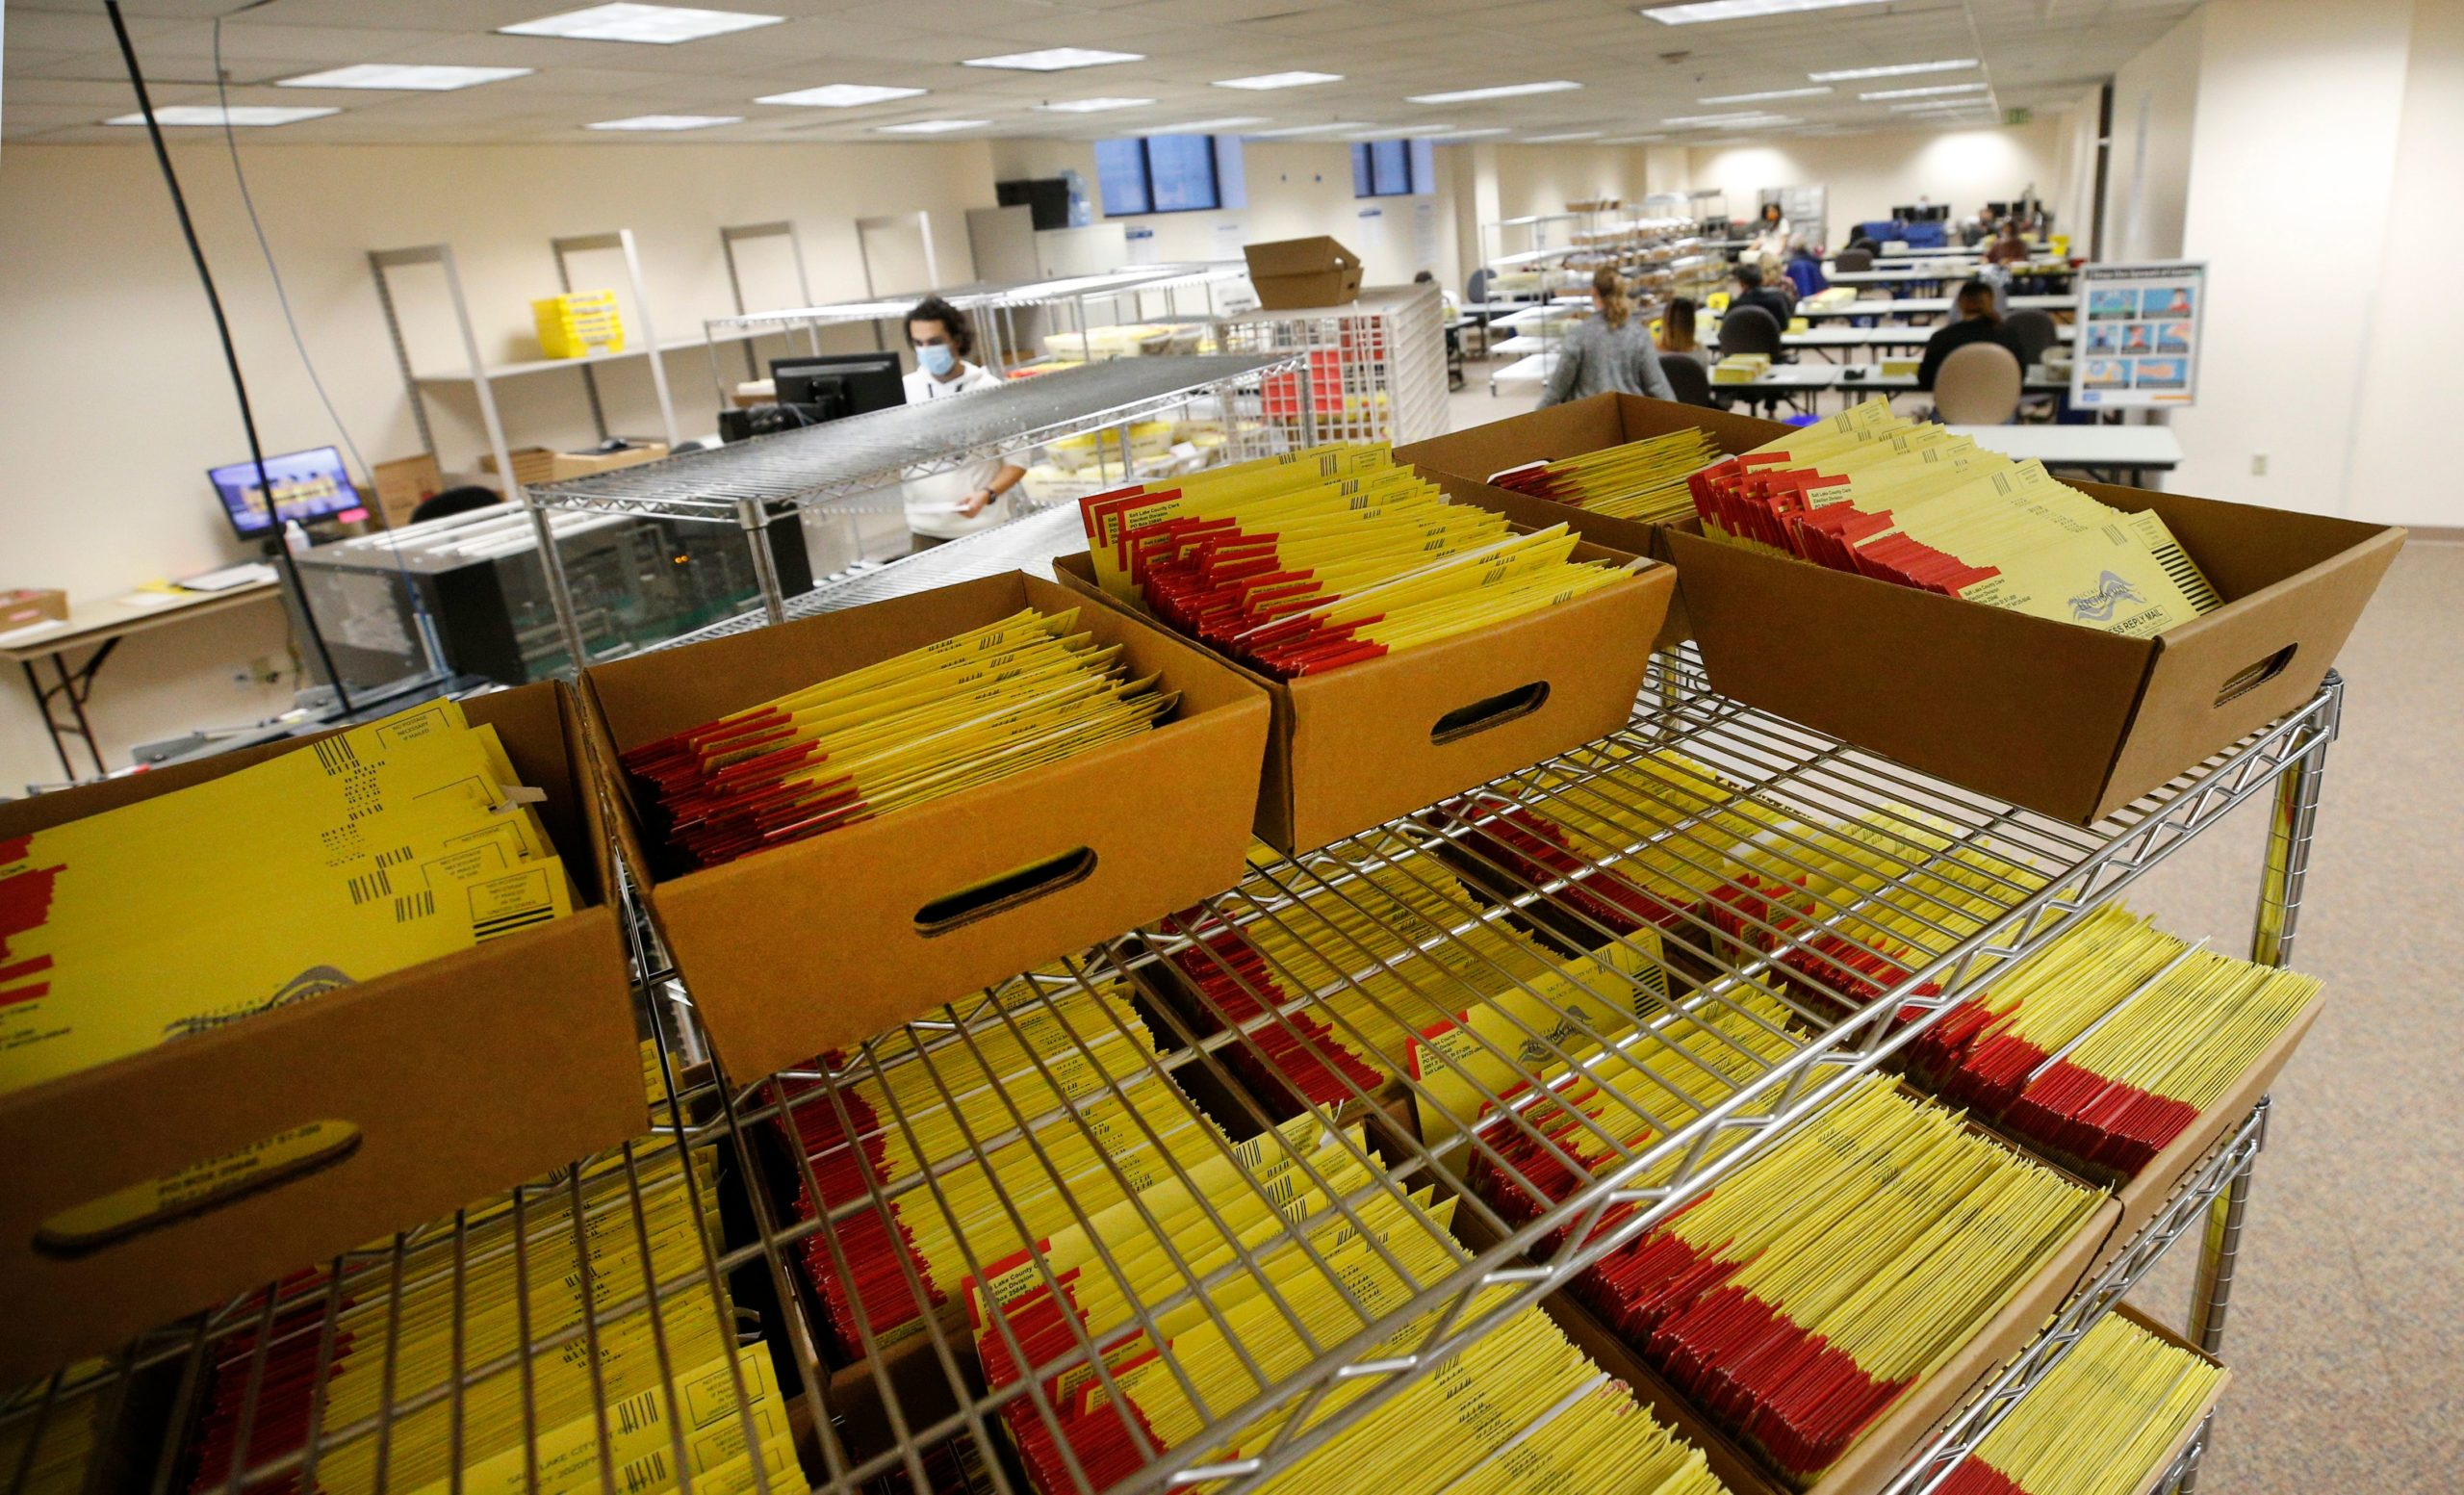 Stacks of mail-in ballots wait to be processed by election workers at the election office in Salt Lake City, Utah on Oct. 29. (George Frey/AFP via Getty Images)